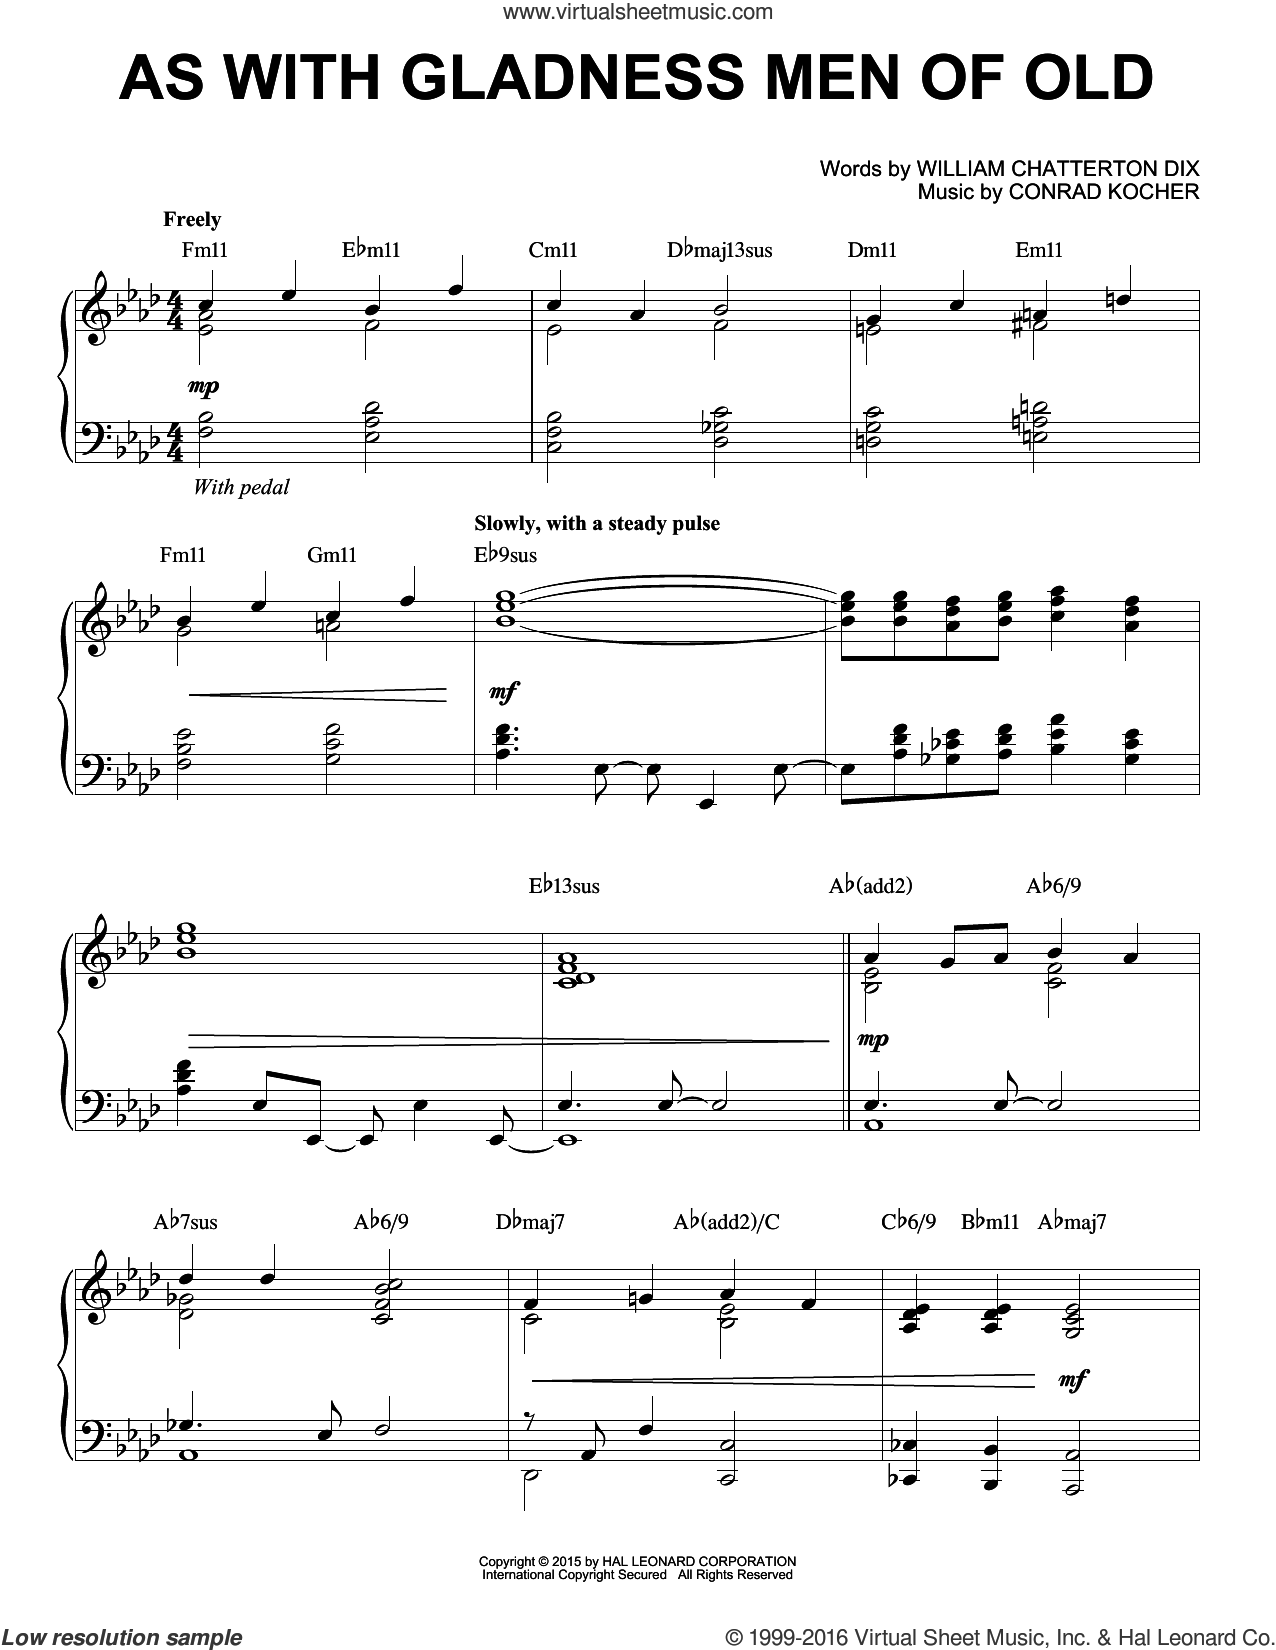 As With Gladness Men Of Old [Jazz version] sheet music for piano solo by Conrad Kocher and William Chatterton Dix, intermediate skill level